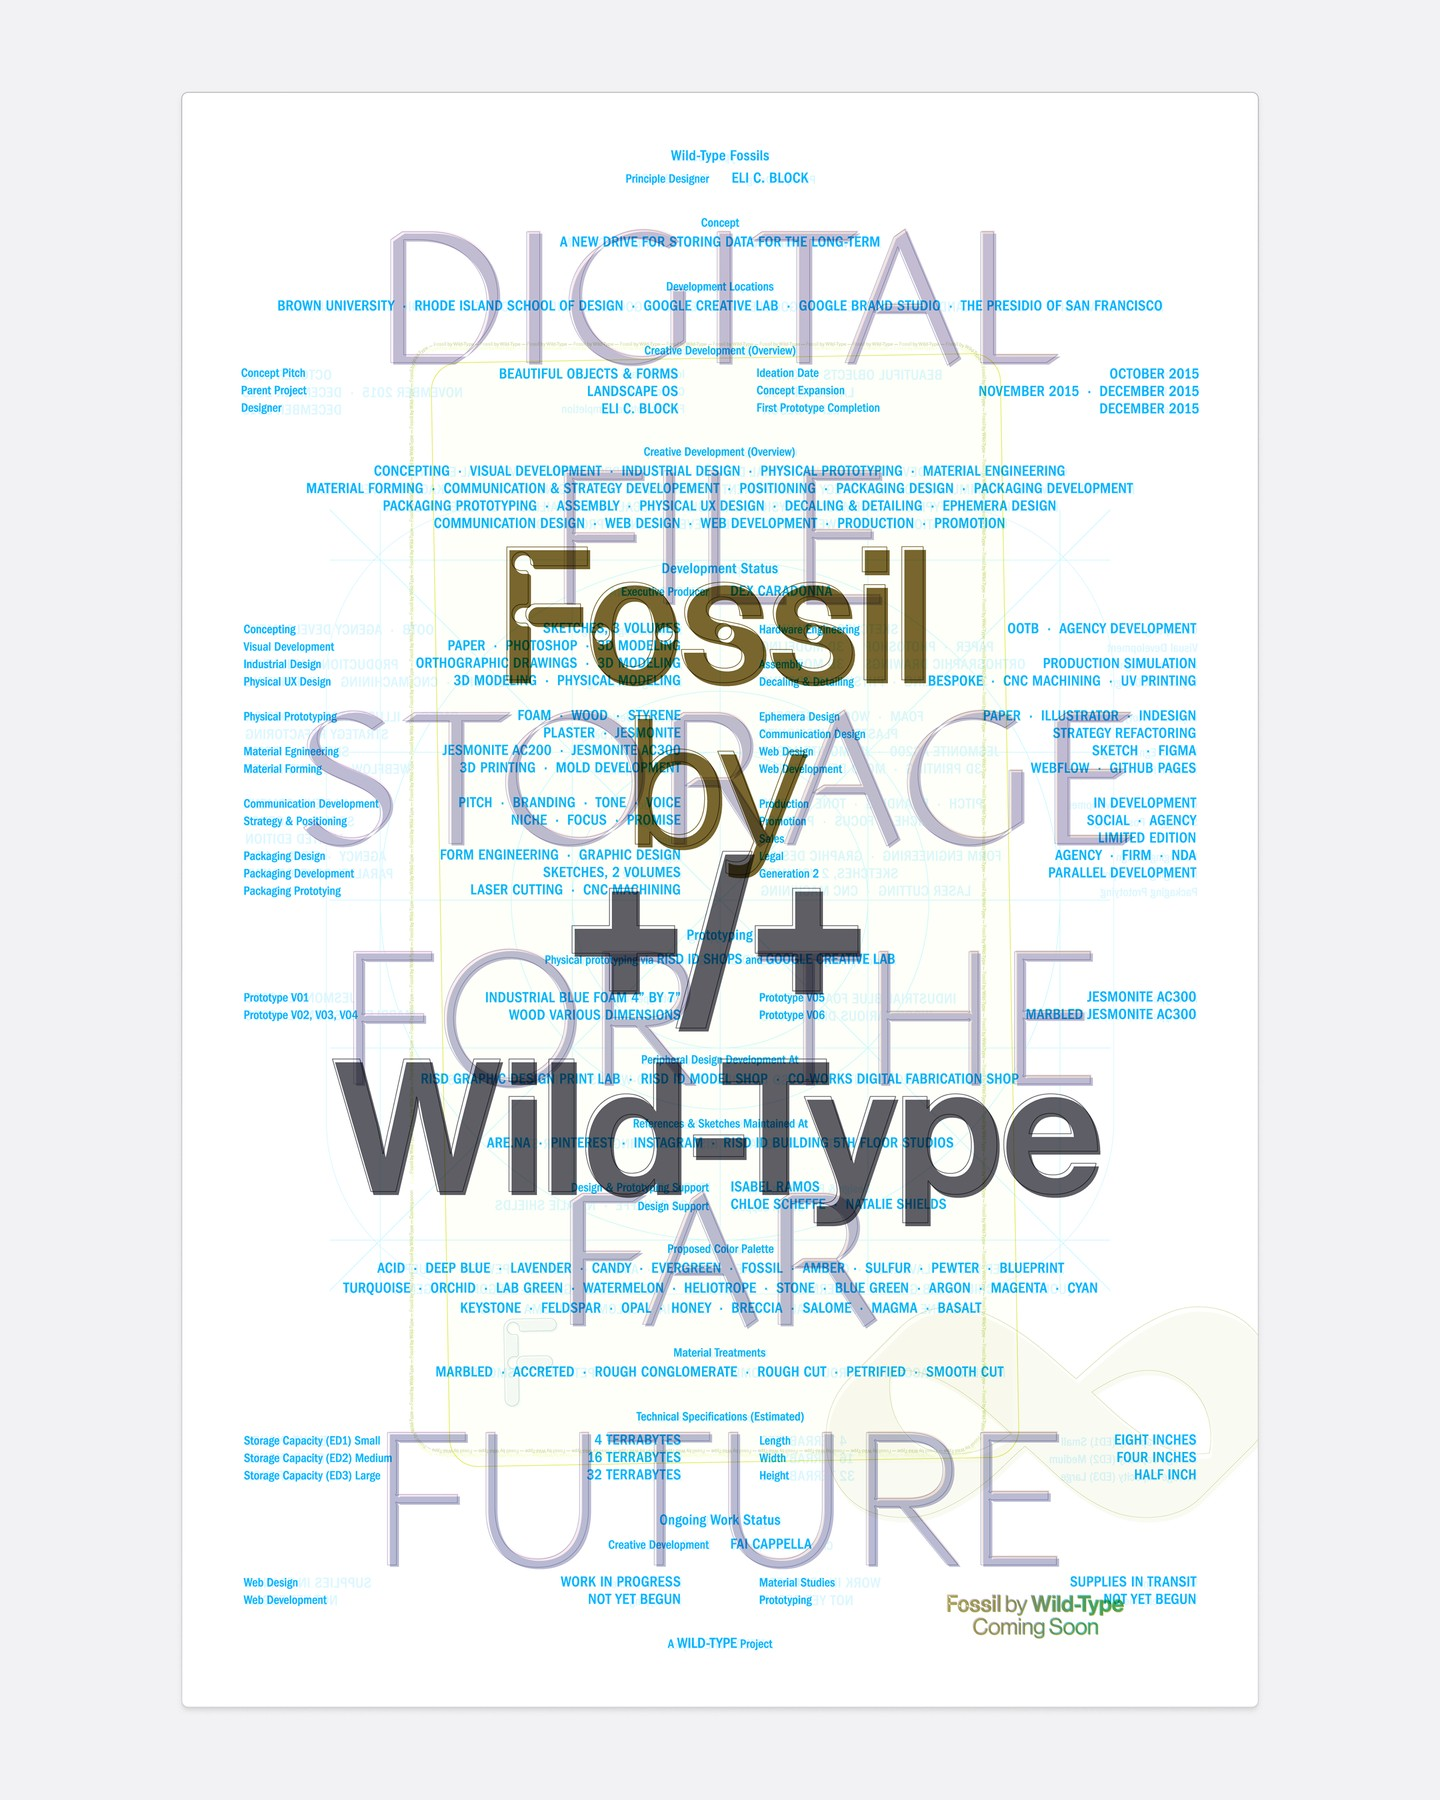 fossil-poster-social-5x4-2400w.png